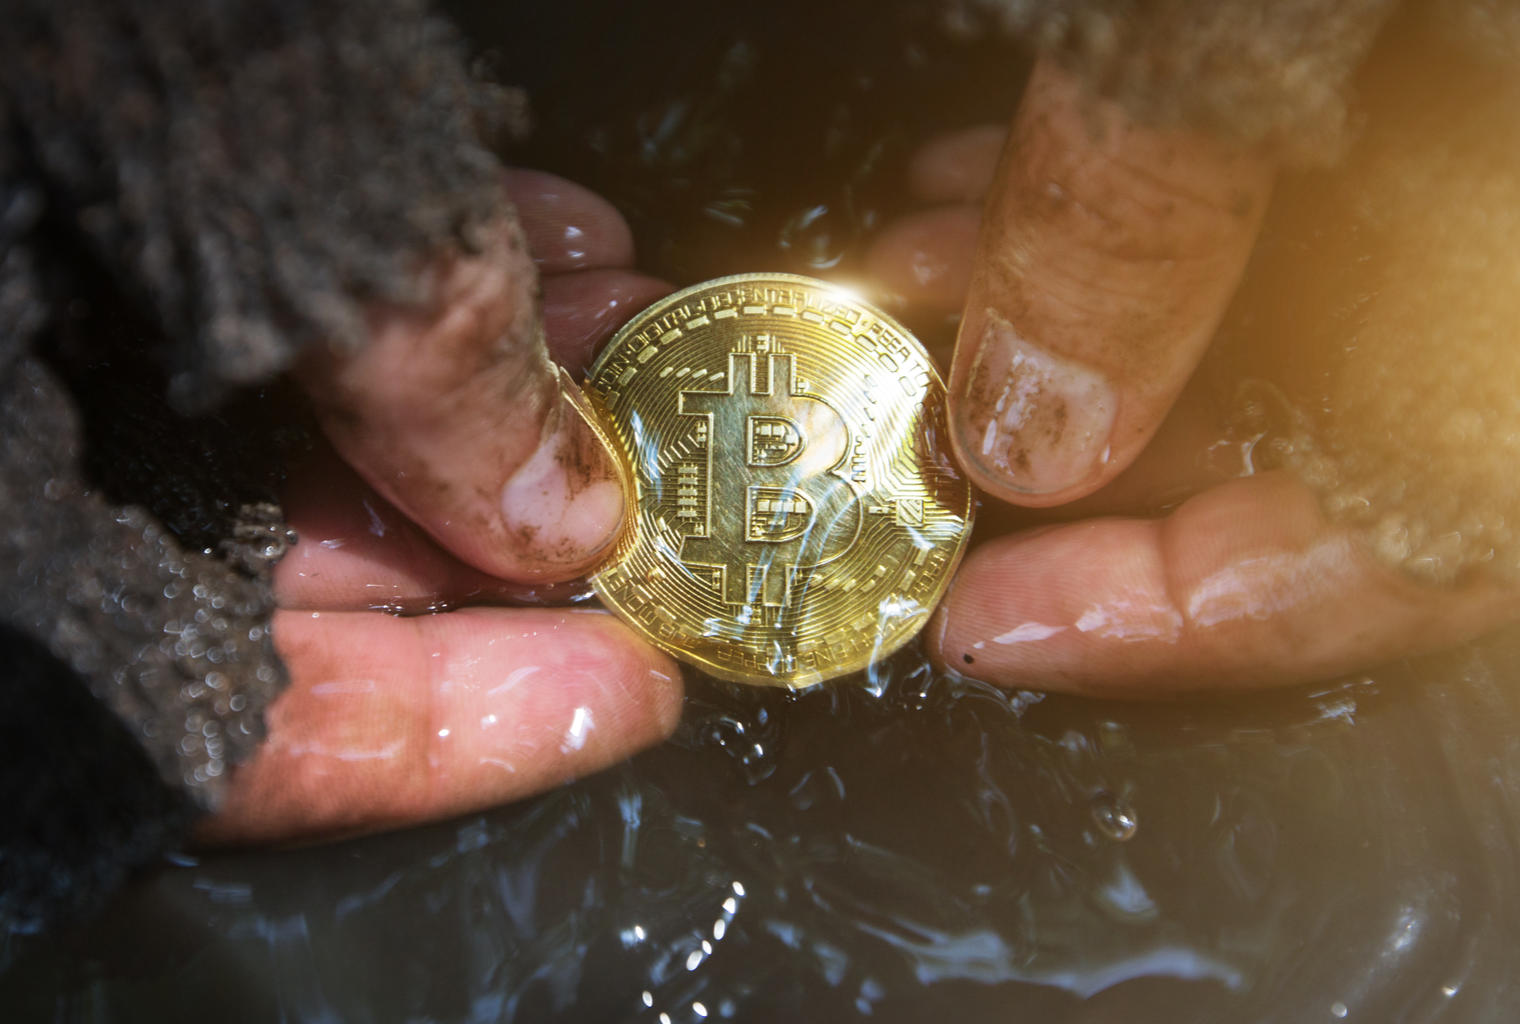 There's No Such Thing as Tainted Bitcoins